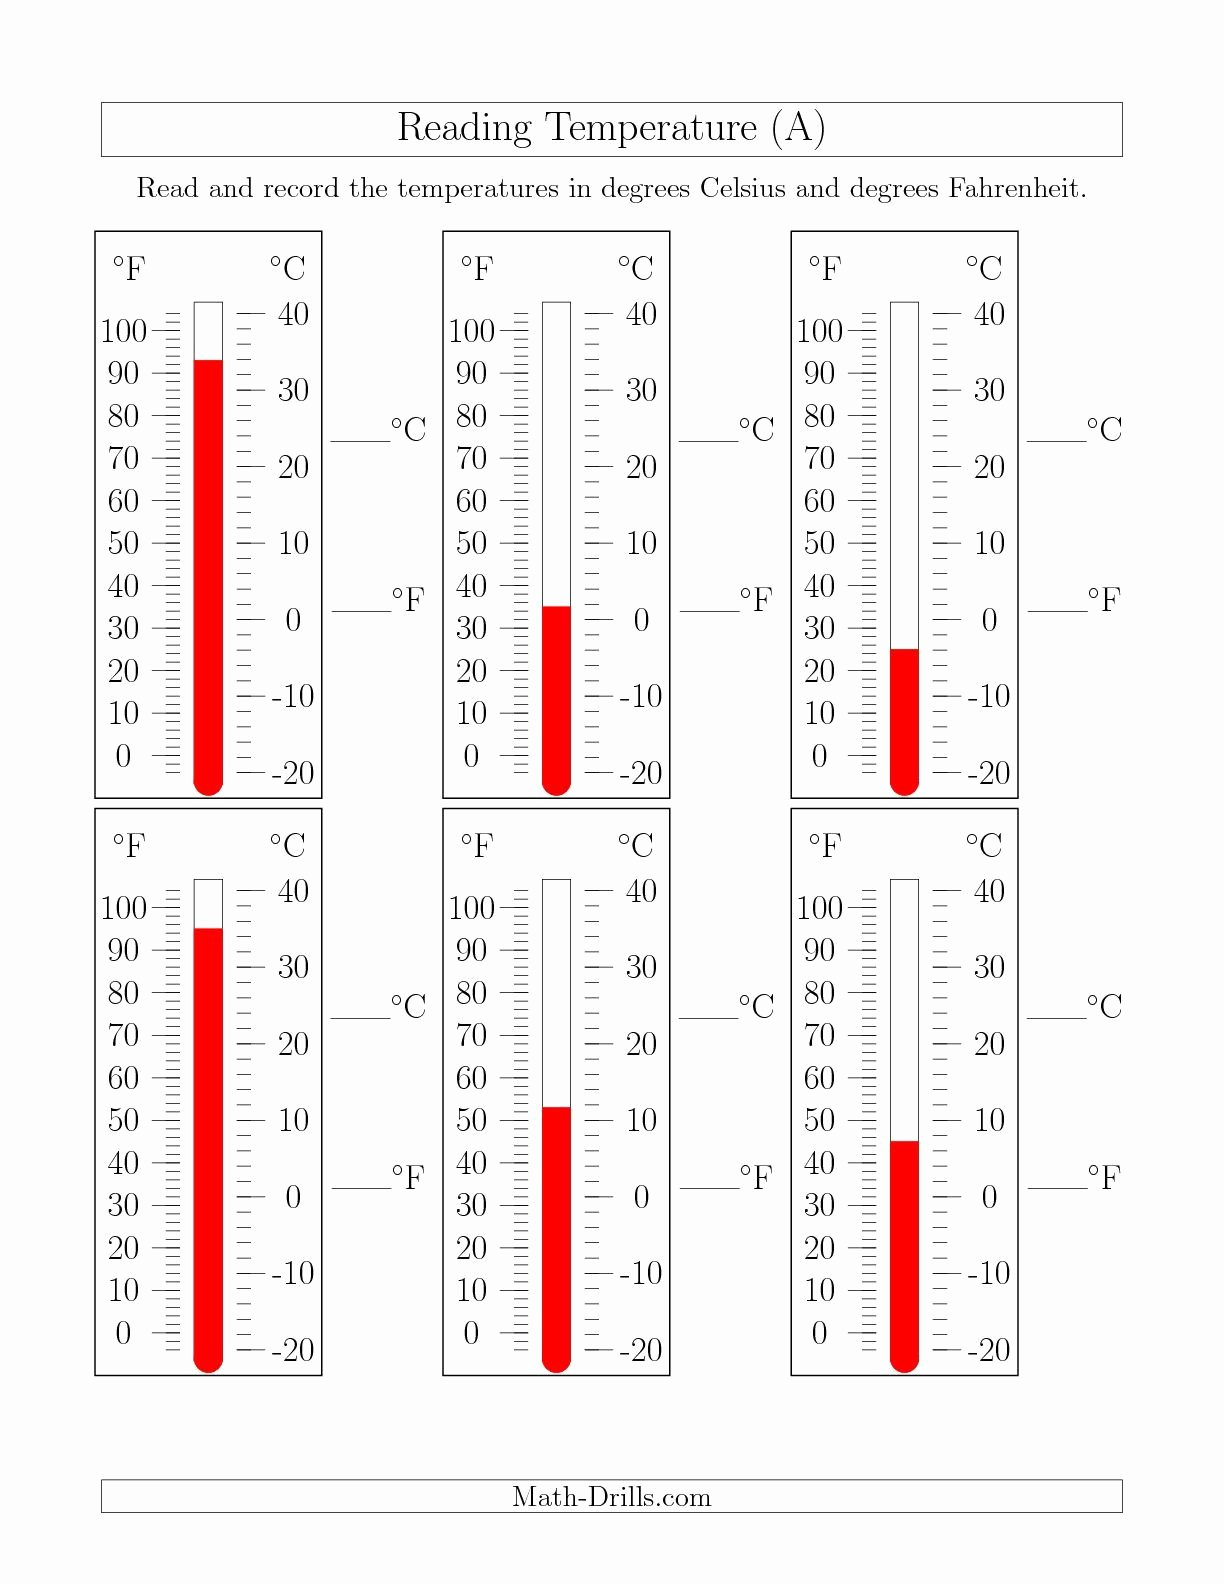 Reading A thermometer Worksheet Inspirational the Reading Temperatures From thermometers A